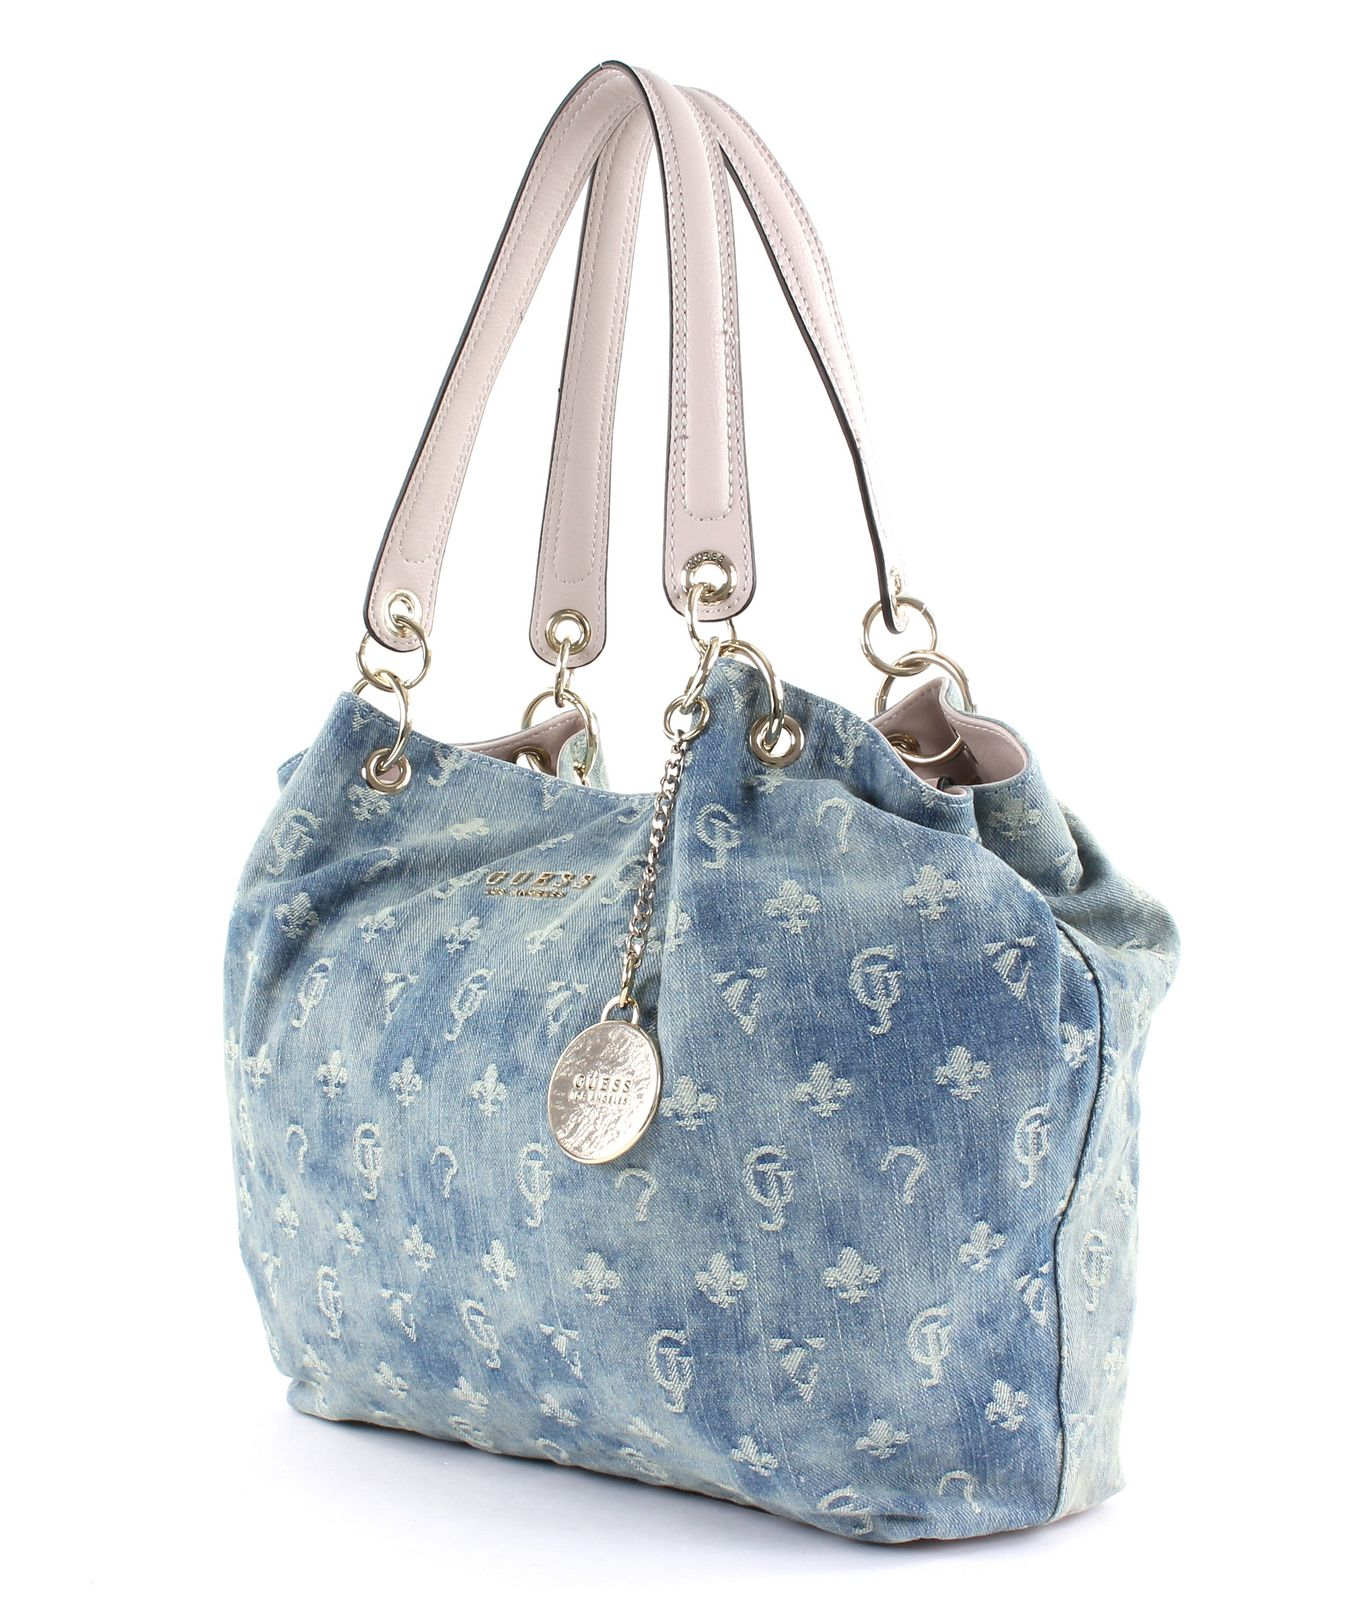 0ad4992a6a3 ... To CloseGUESS Cary Carryall Blue Denim   153,10 € Tap To CloseOnly  possible if you pay by Paypal, Amazon Payments, Credit Card, Cash on  Delivery, ...